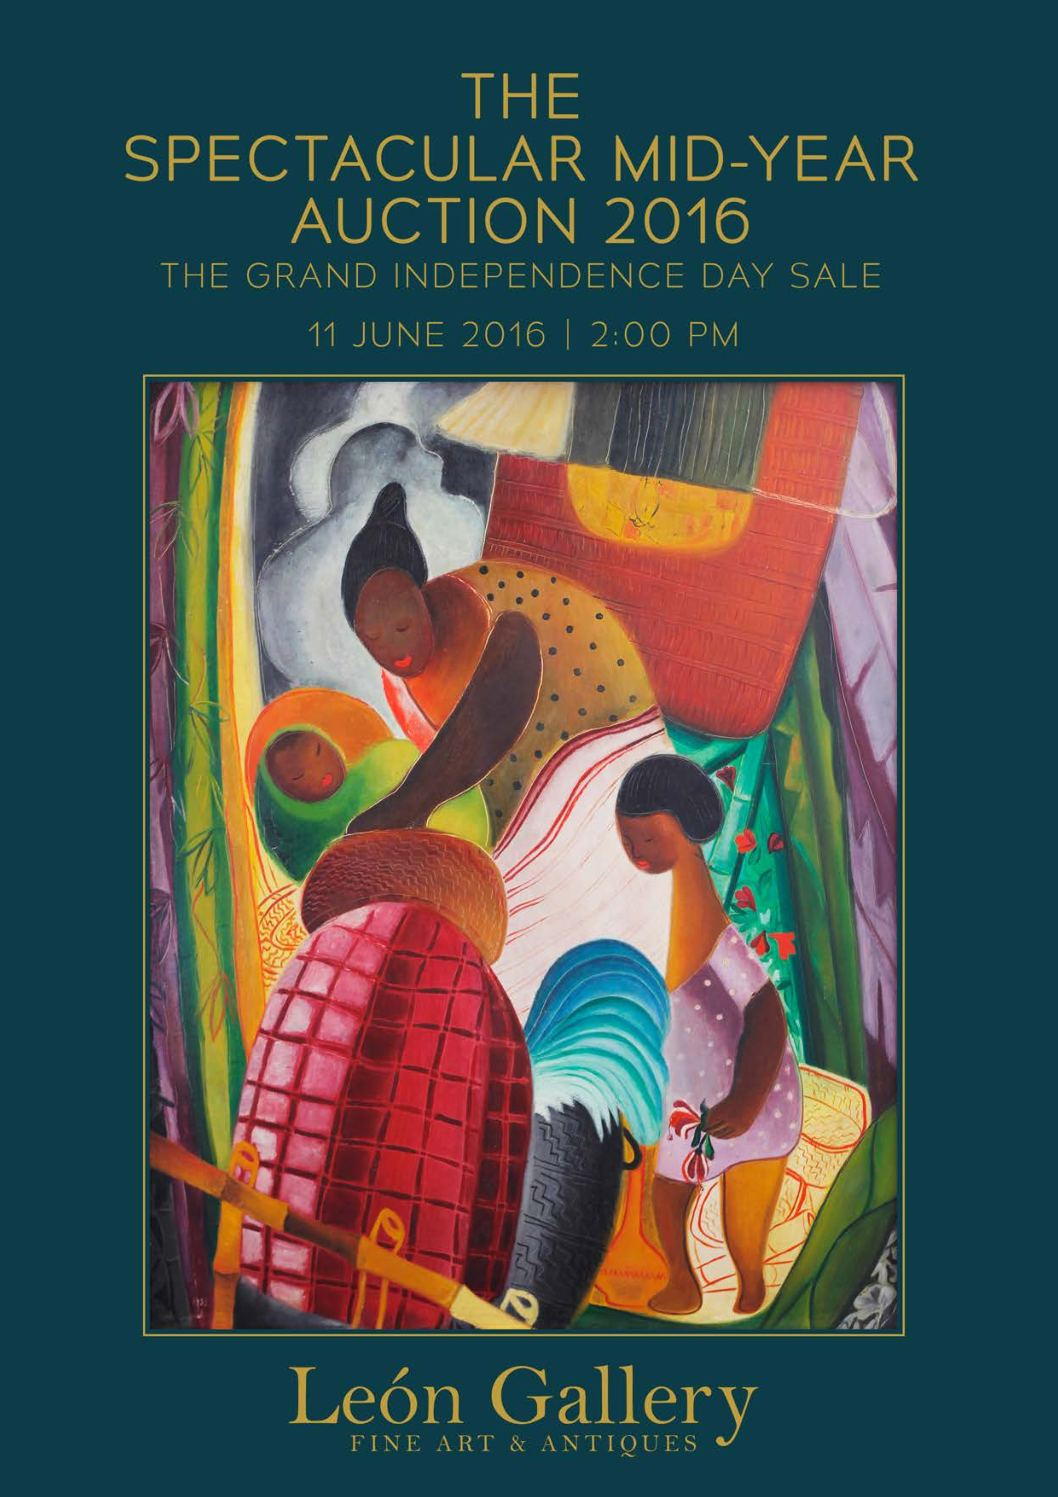 Calaméo The Spectacular Mid Year Auction 2016 Catalog Design